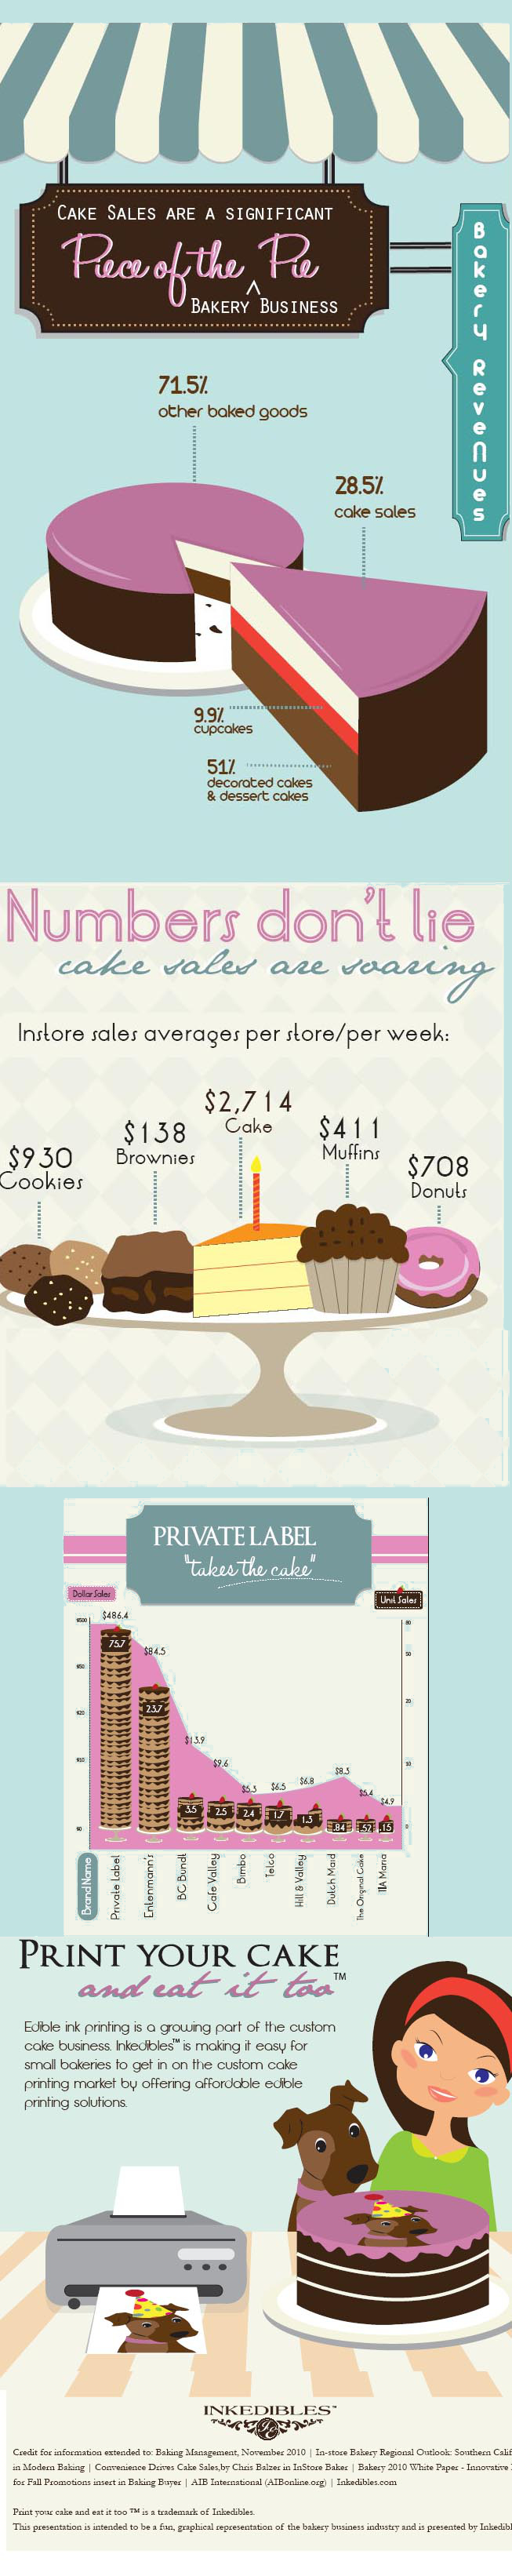 Cake Sales Trends